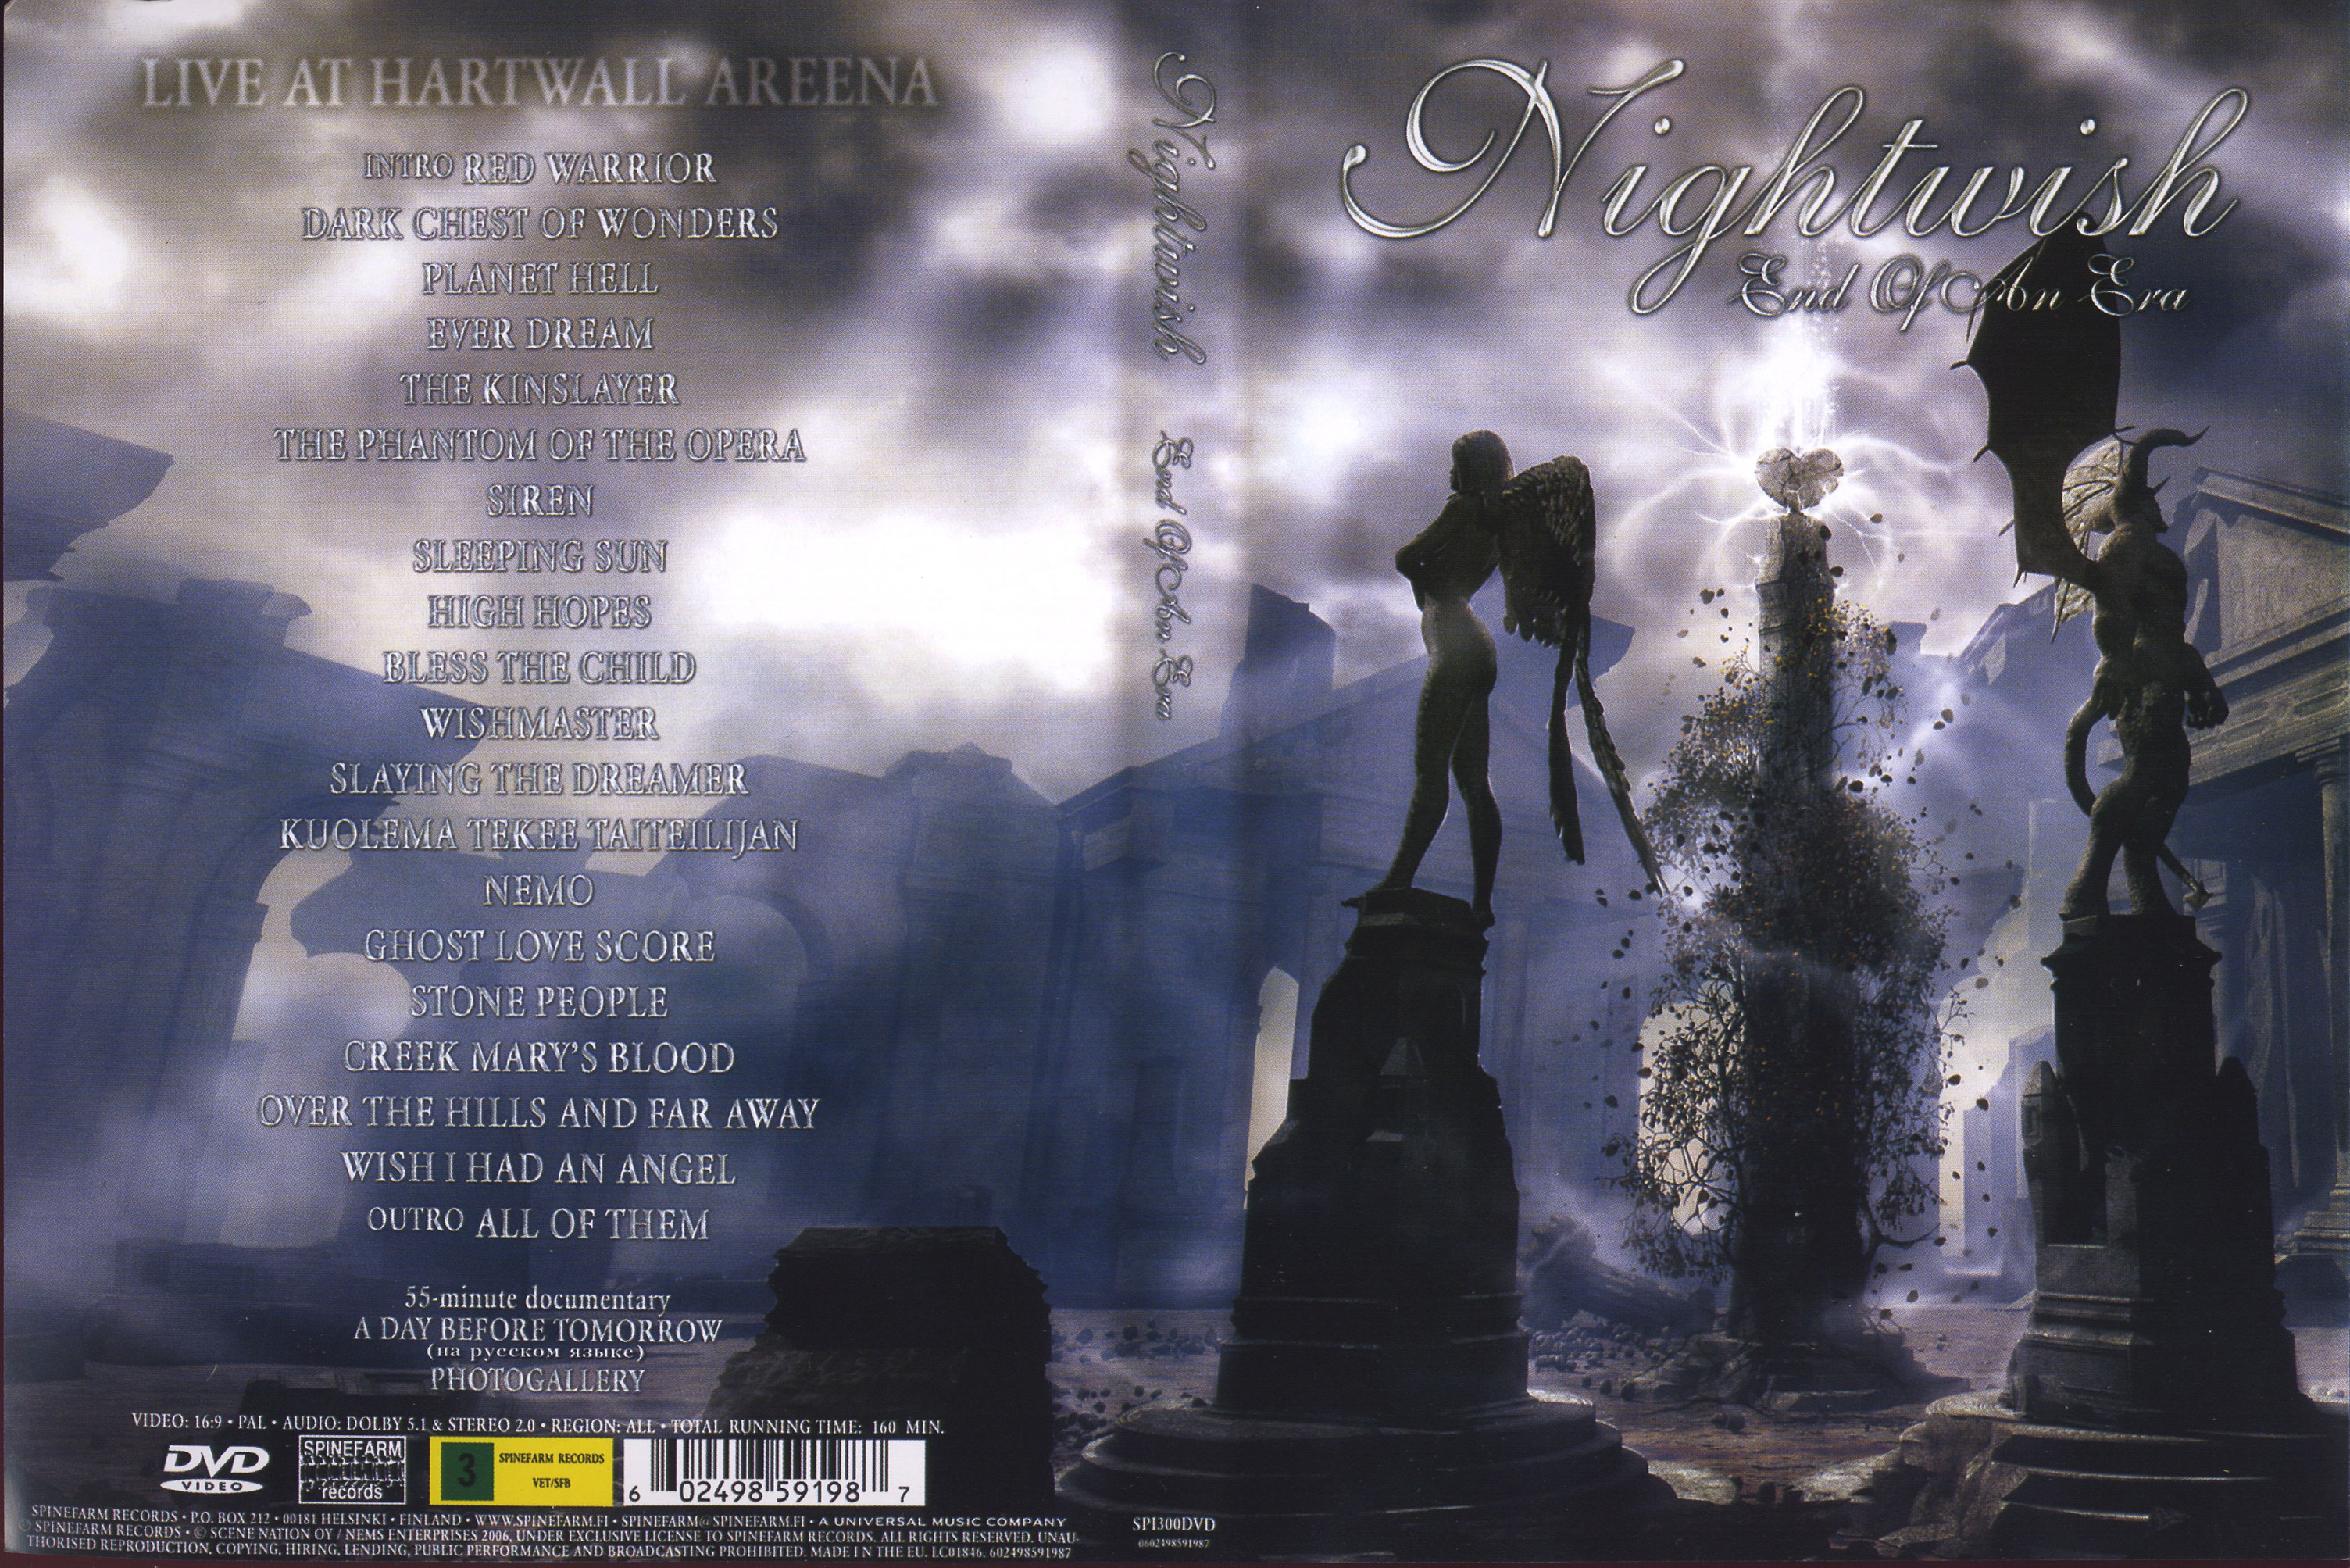 http://www.deadonetrading.com/cms/modules/recordings/public/images/video/Nightwish_xxxx-xx-xx__cover_1290886844.jpg